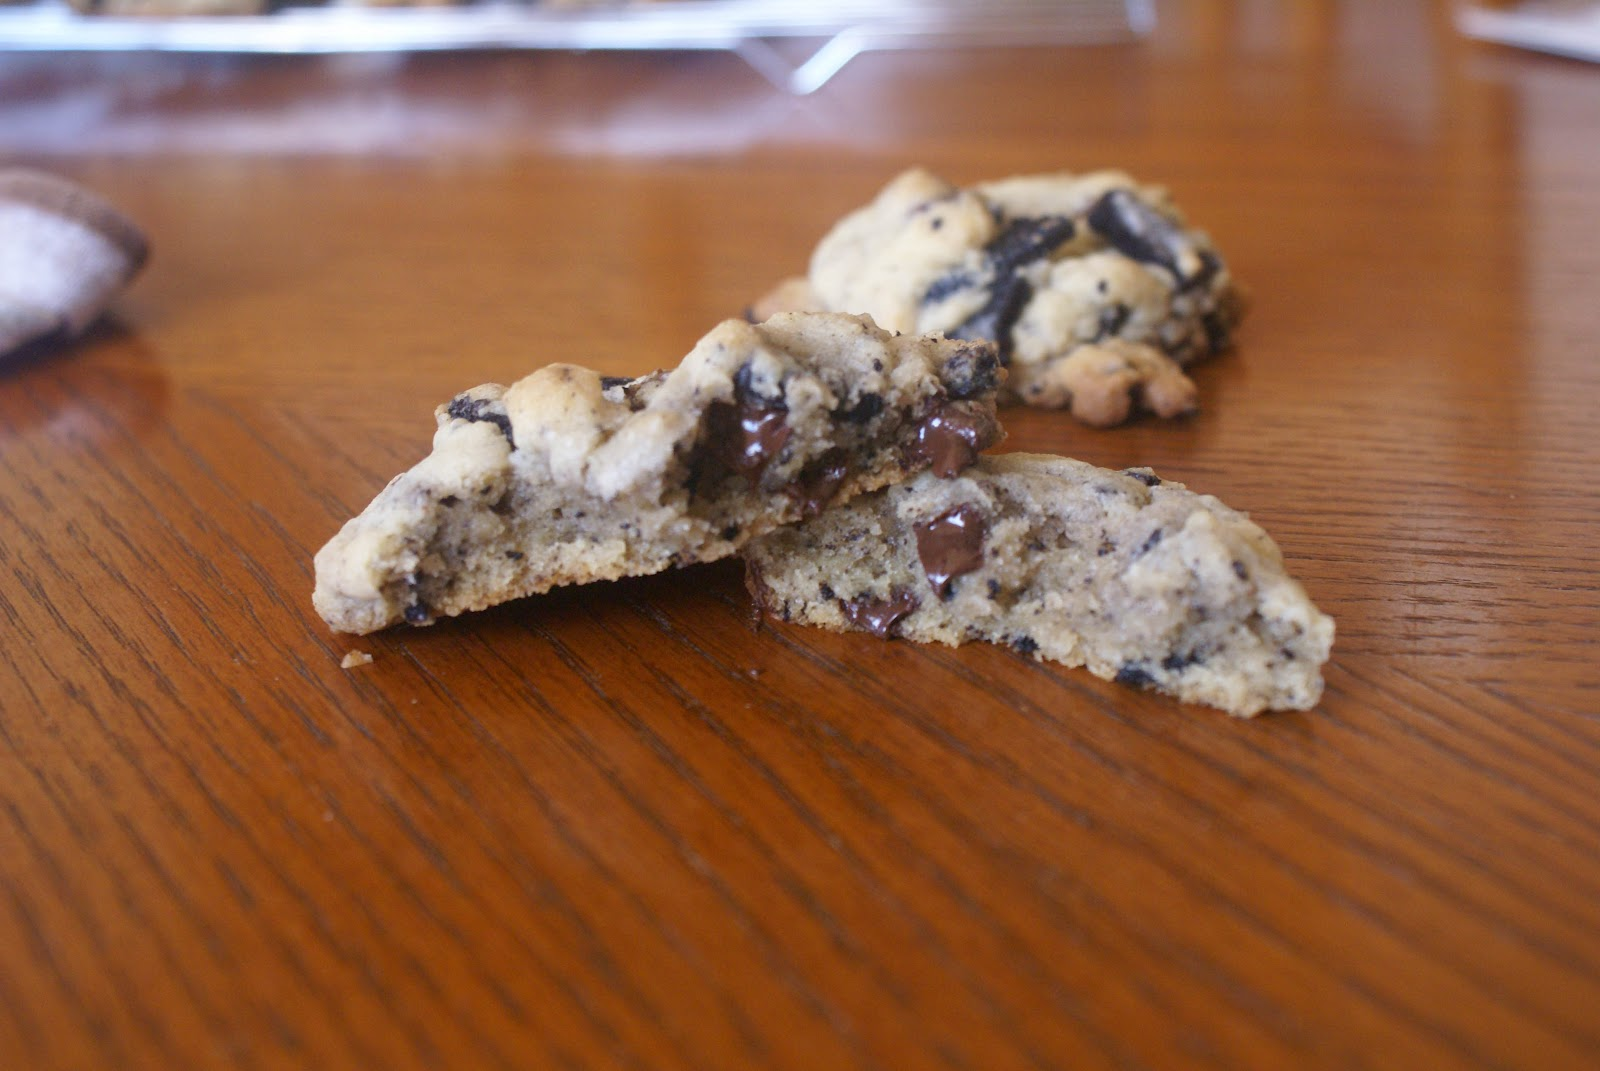 sunflowersandsprinkles: Oreo Chocolate Chip Cookies